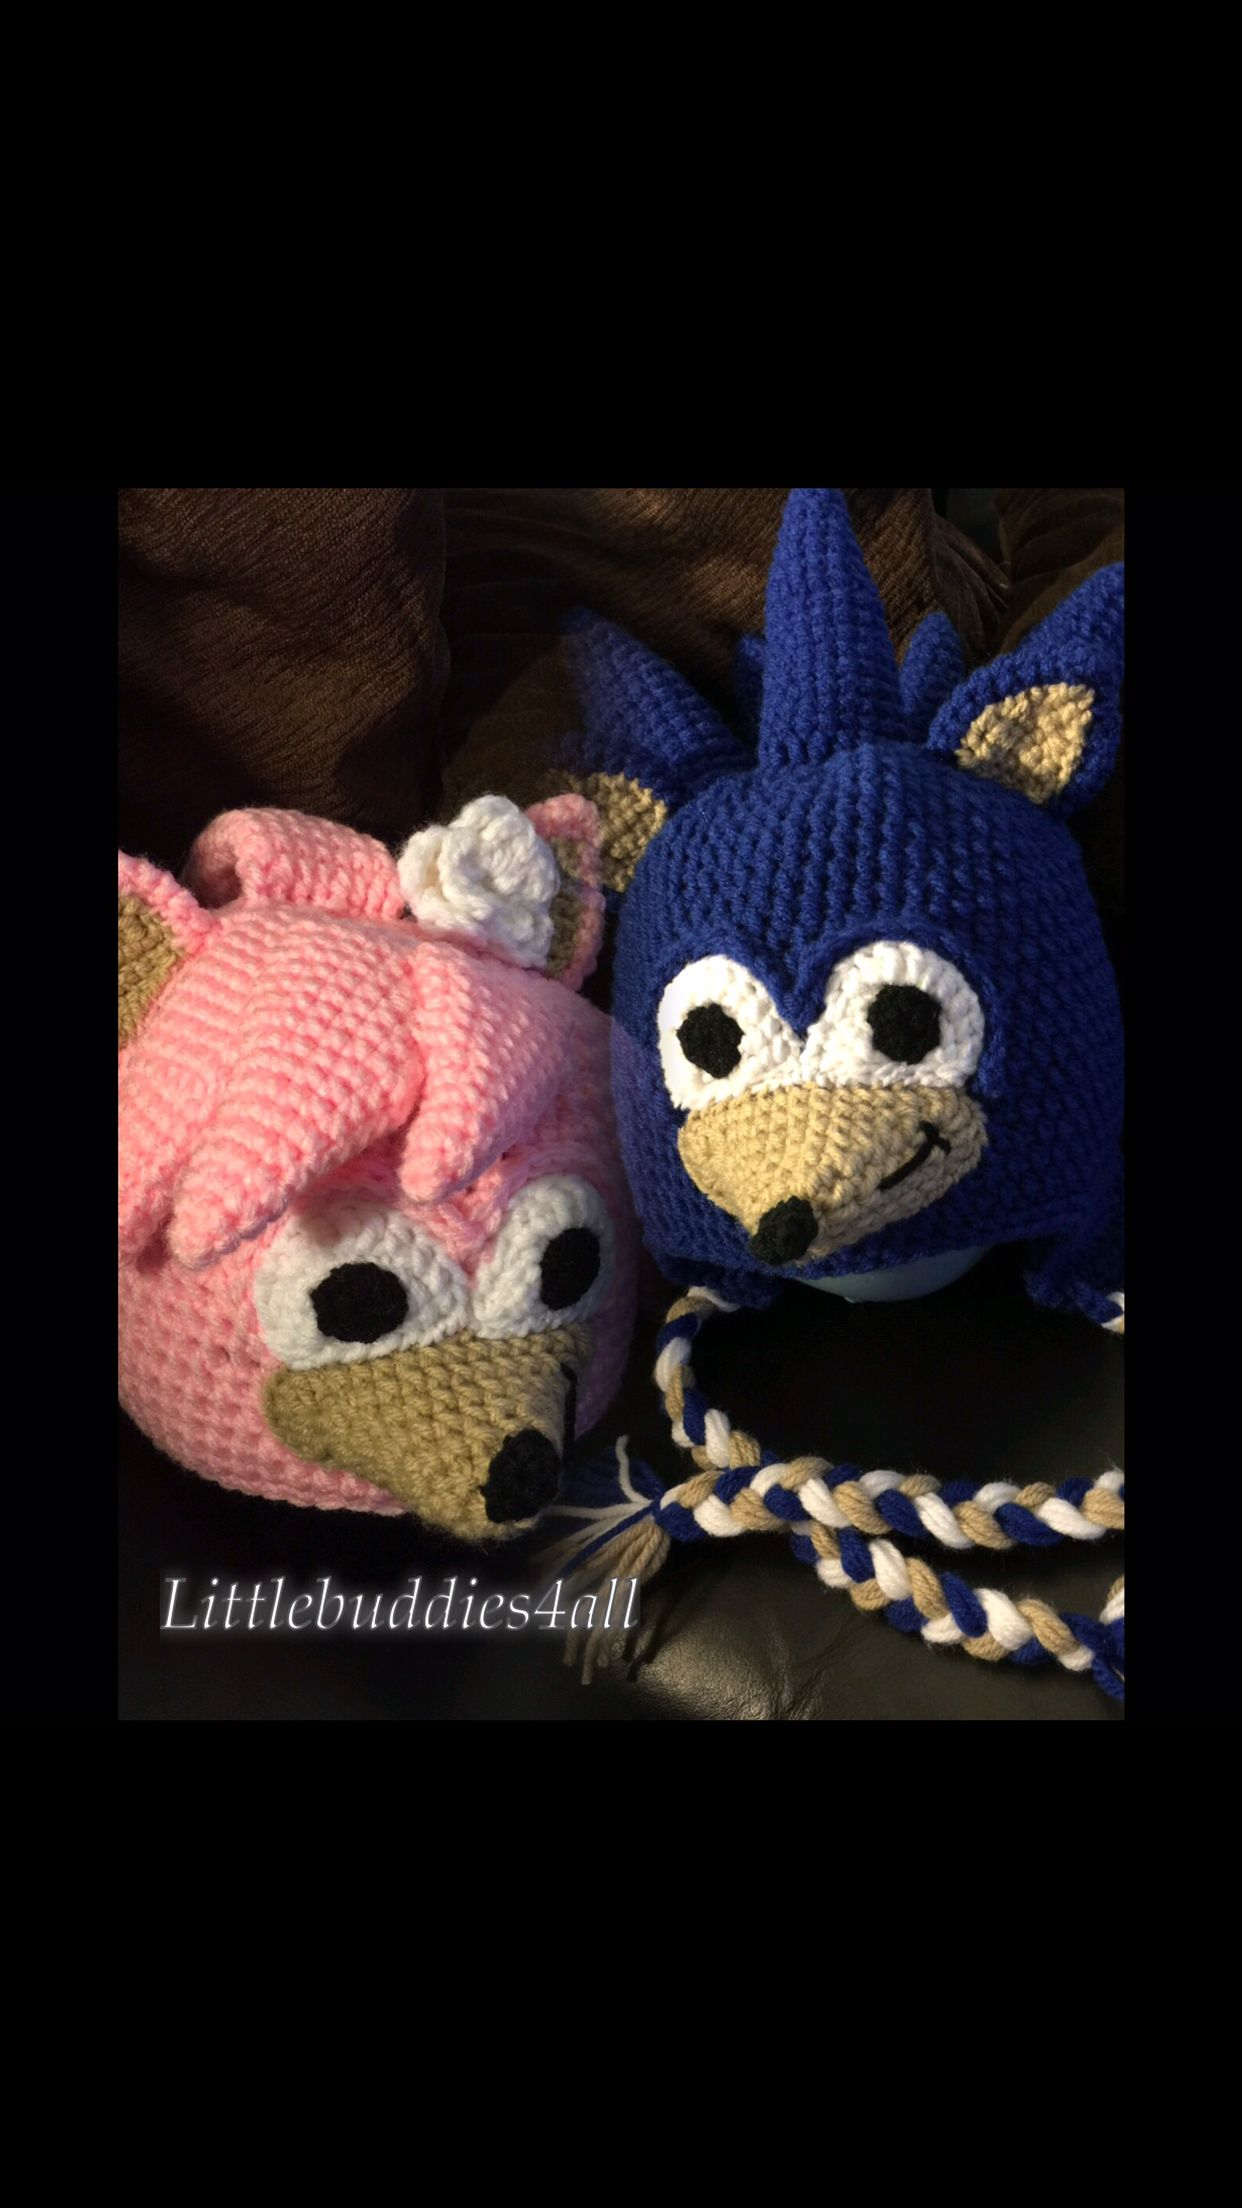 Crochet sonic the hedgehog hat pink and blue Littlebuddies4all ...